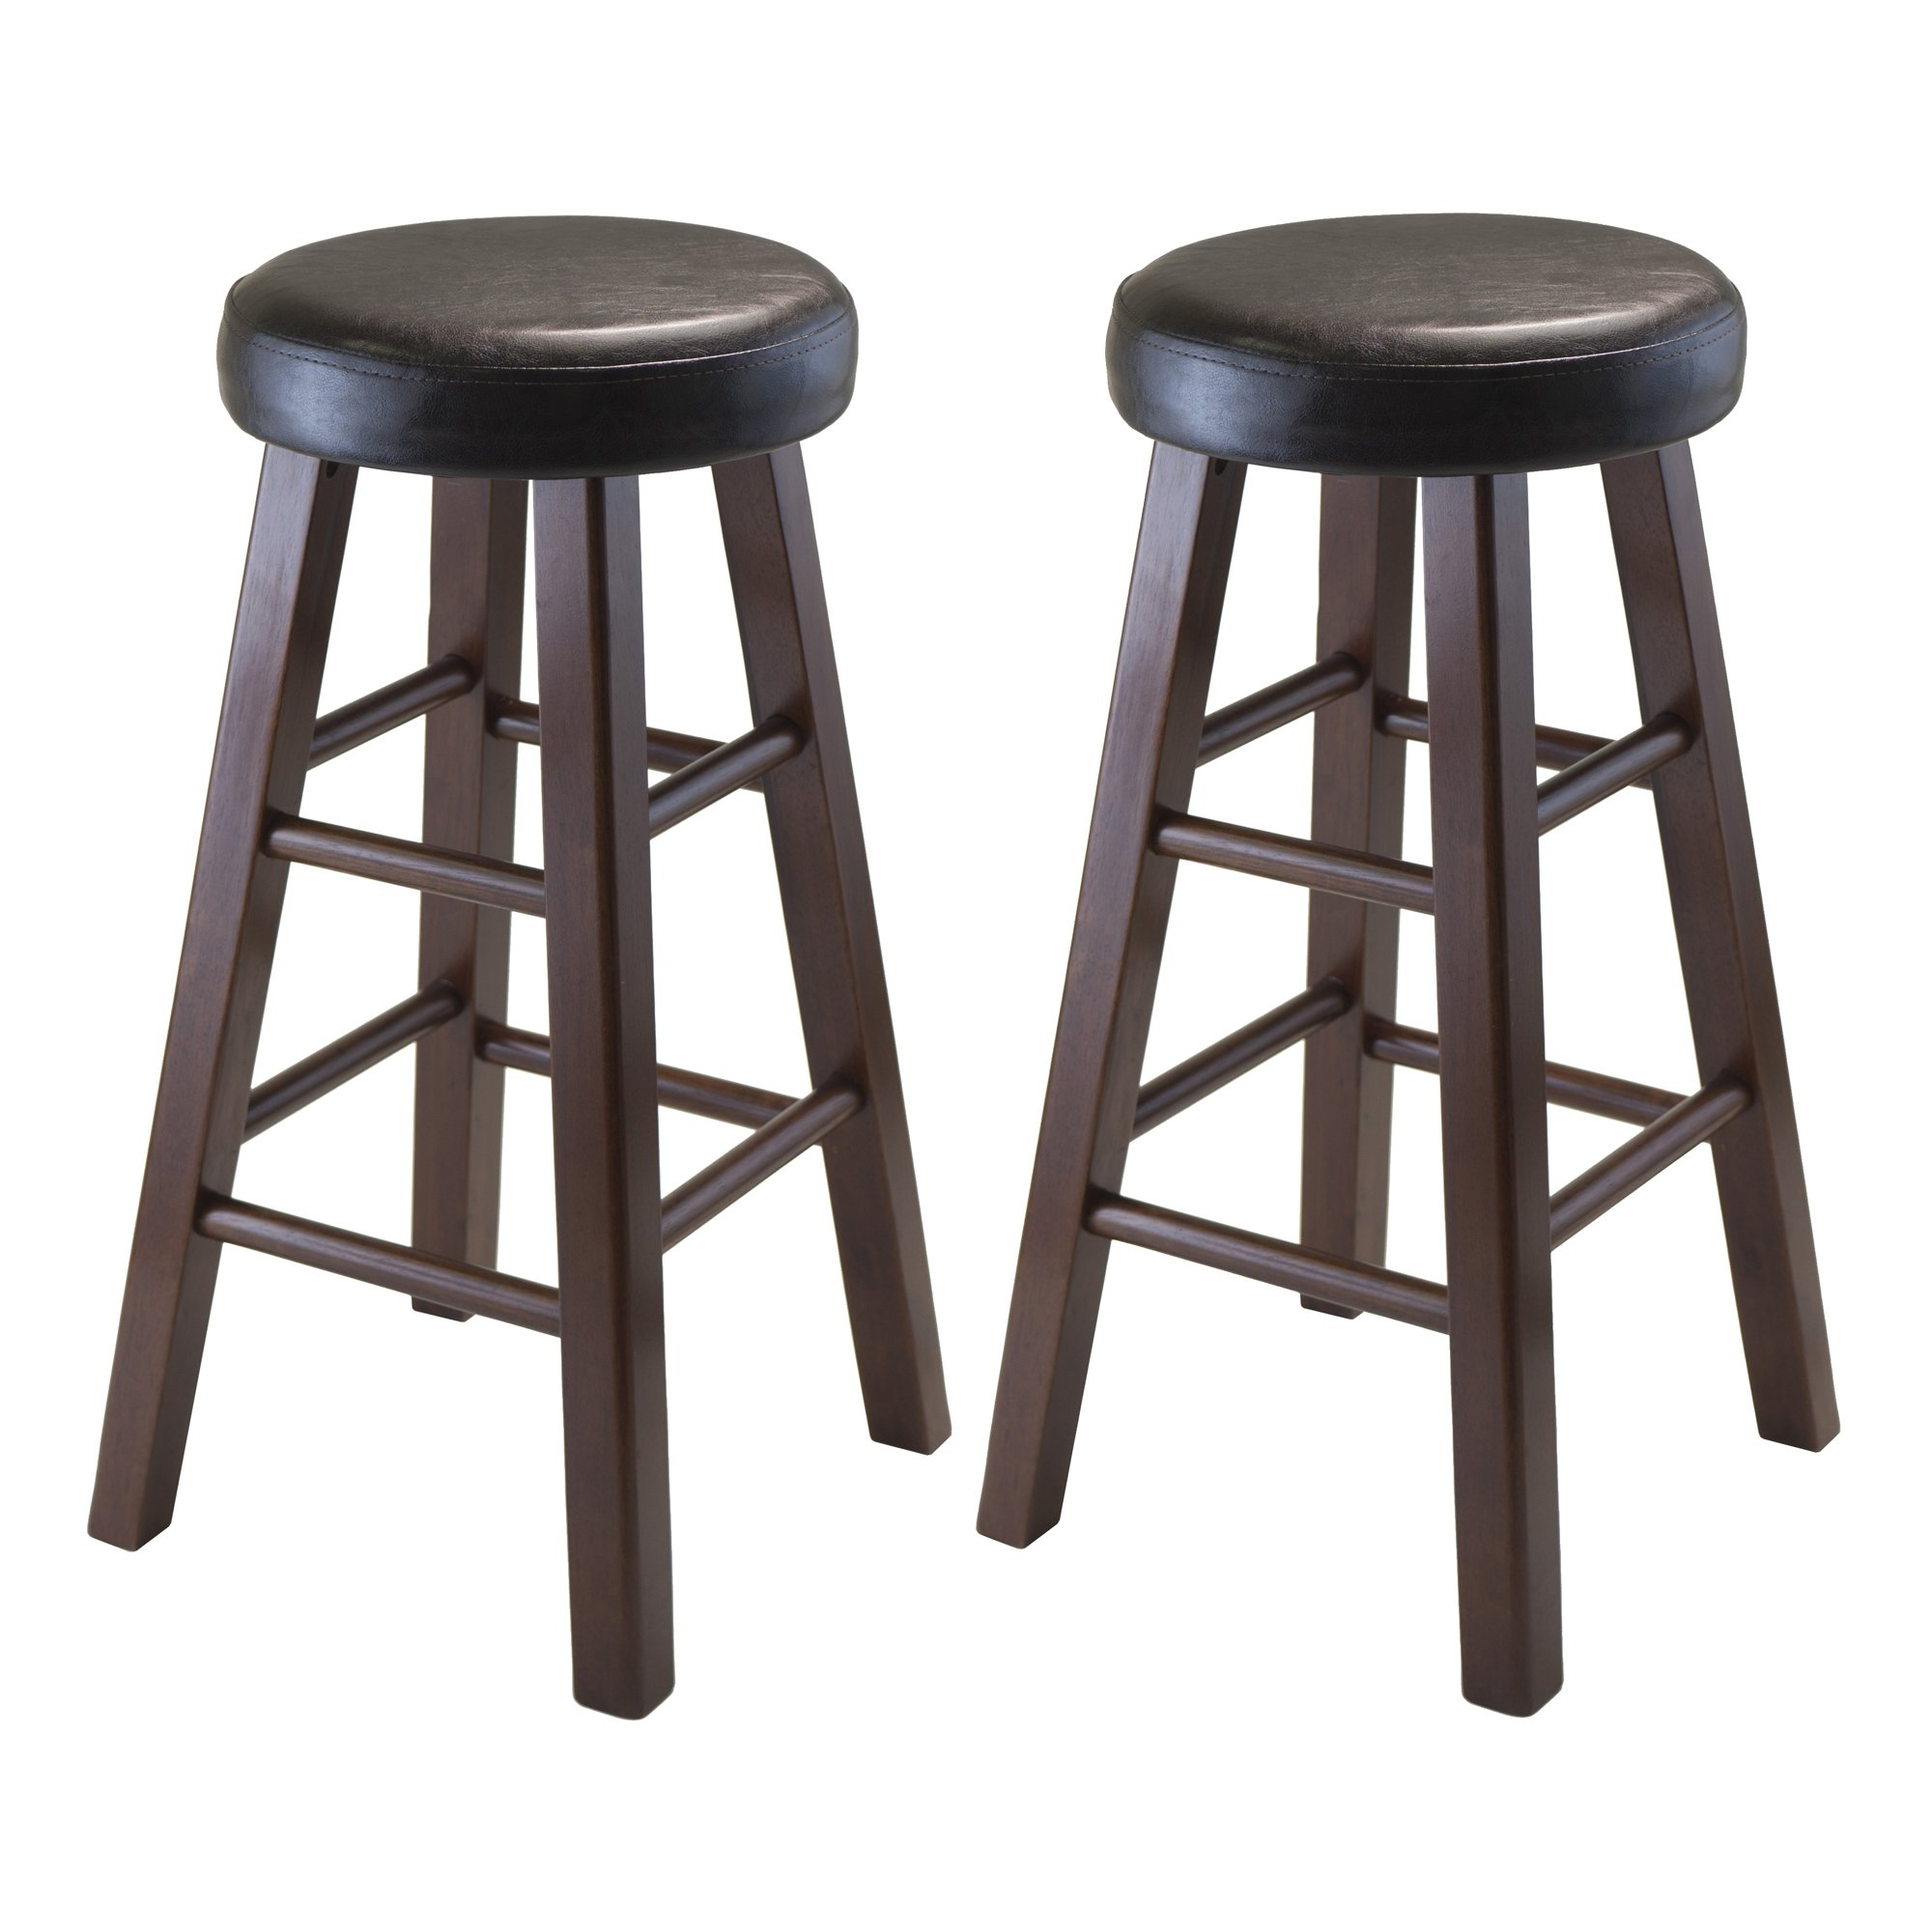 Winsome Wood Marta Assembled Round Counter Stool with PU Leather Cushion Seat, Square Legs, 25.4-Inch, Set of 2 by Winsome